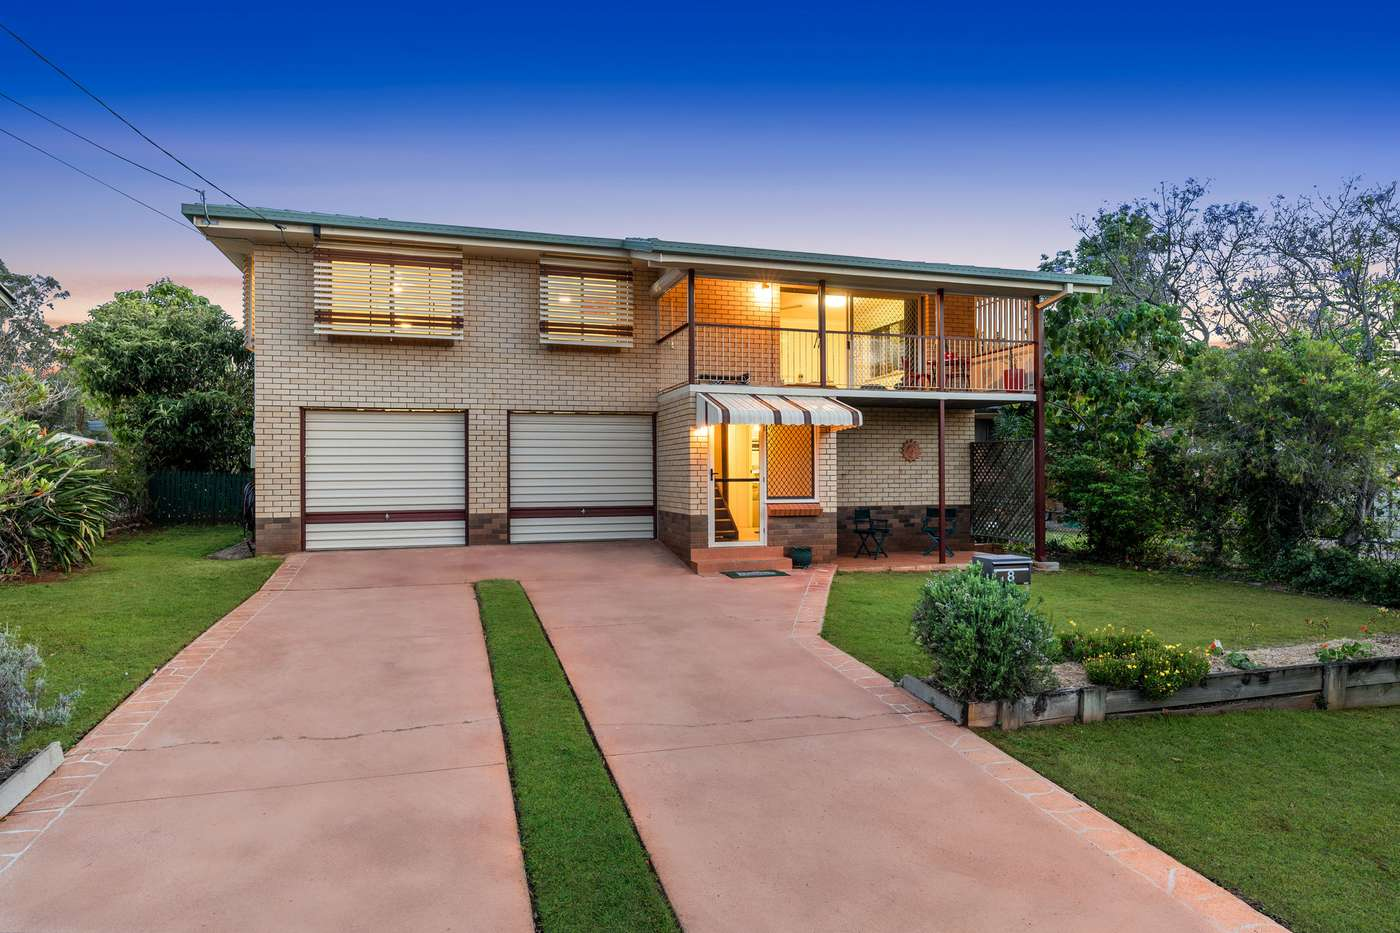 Main view of Homely house listing, 8 Mindarie Crescent, Wellington Point, QLD 4160